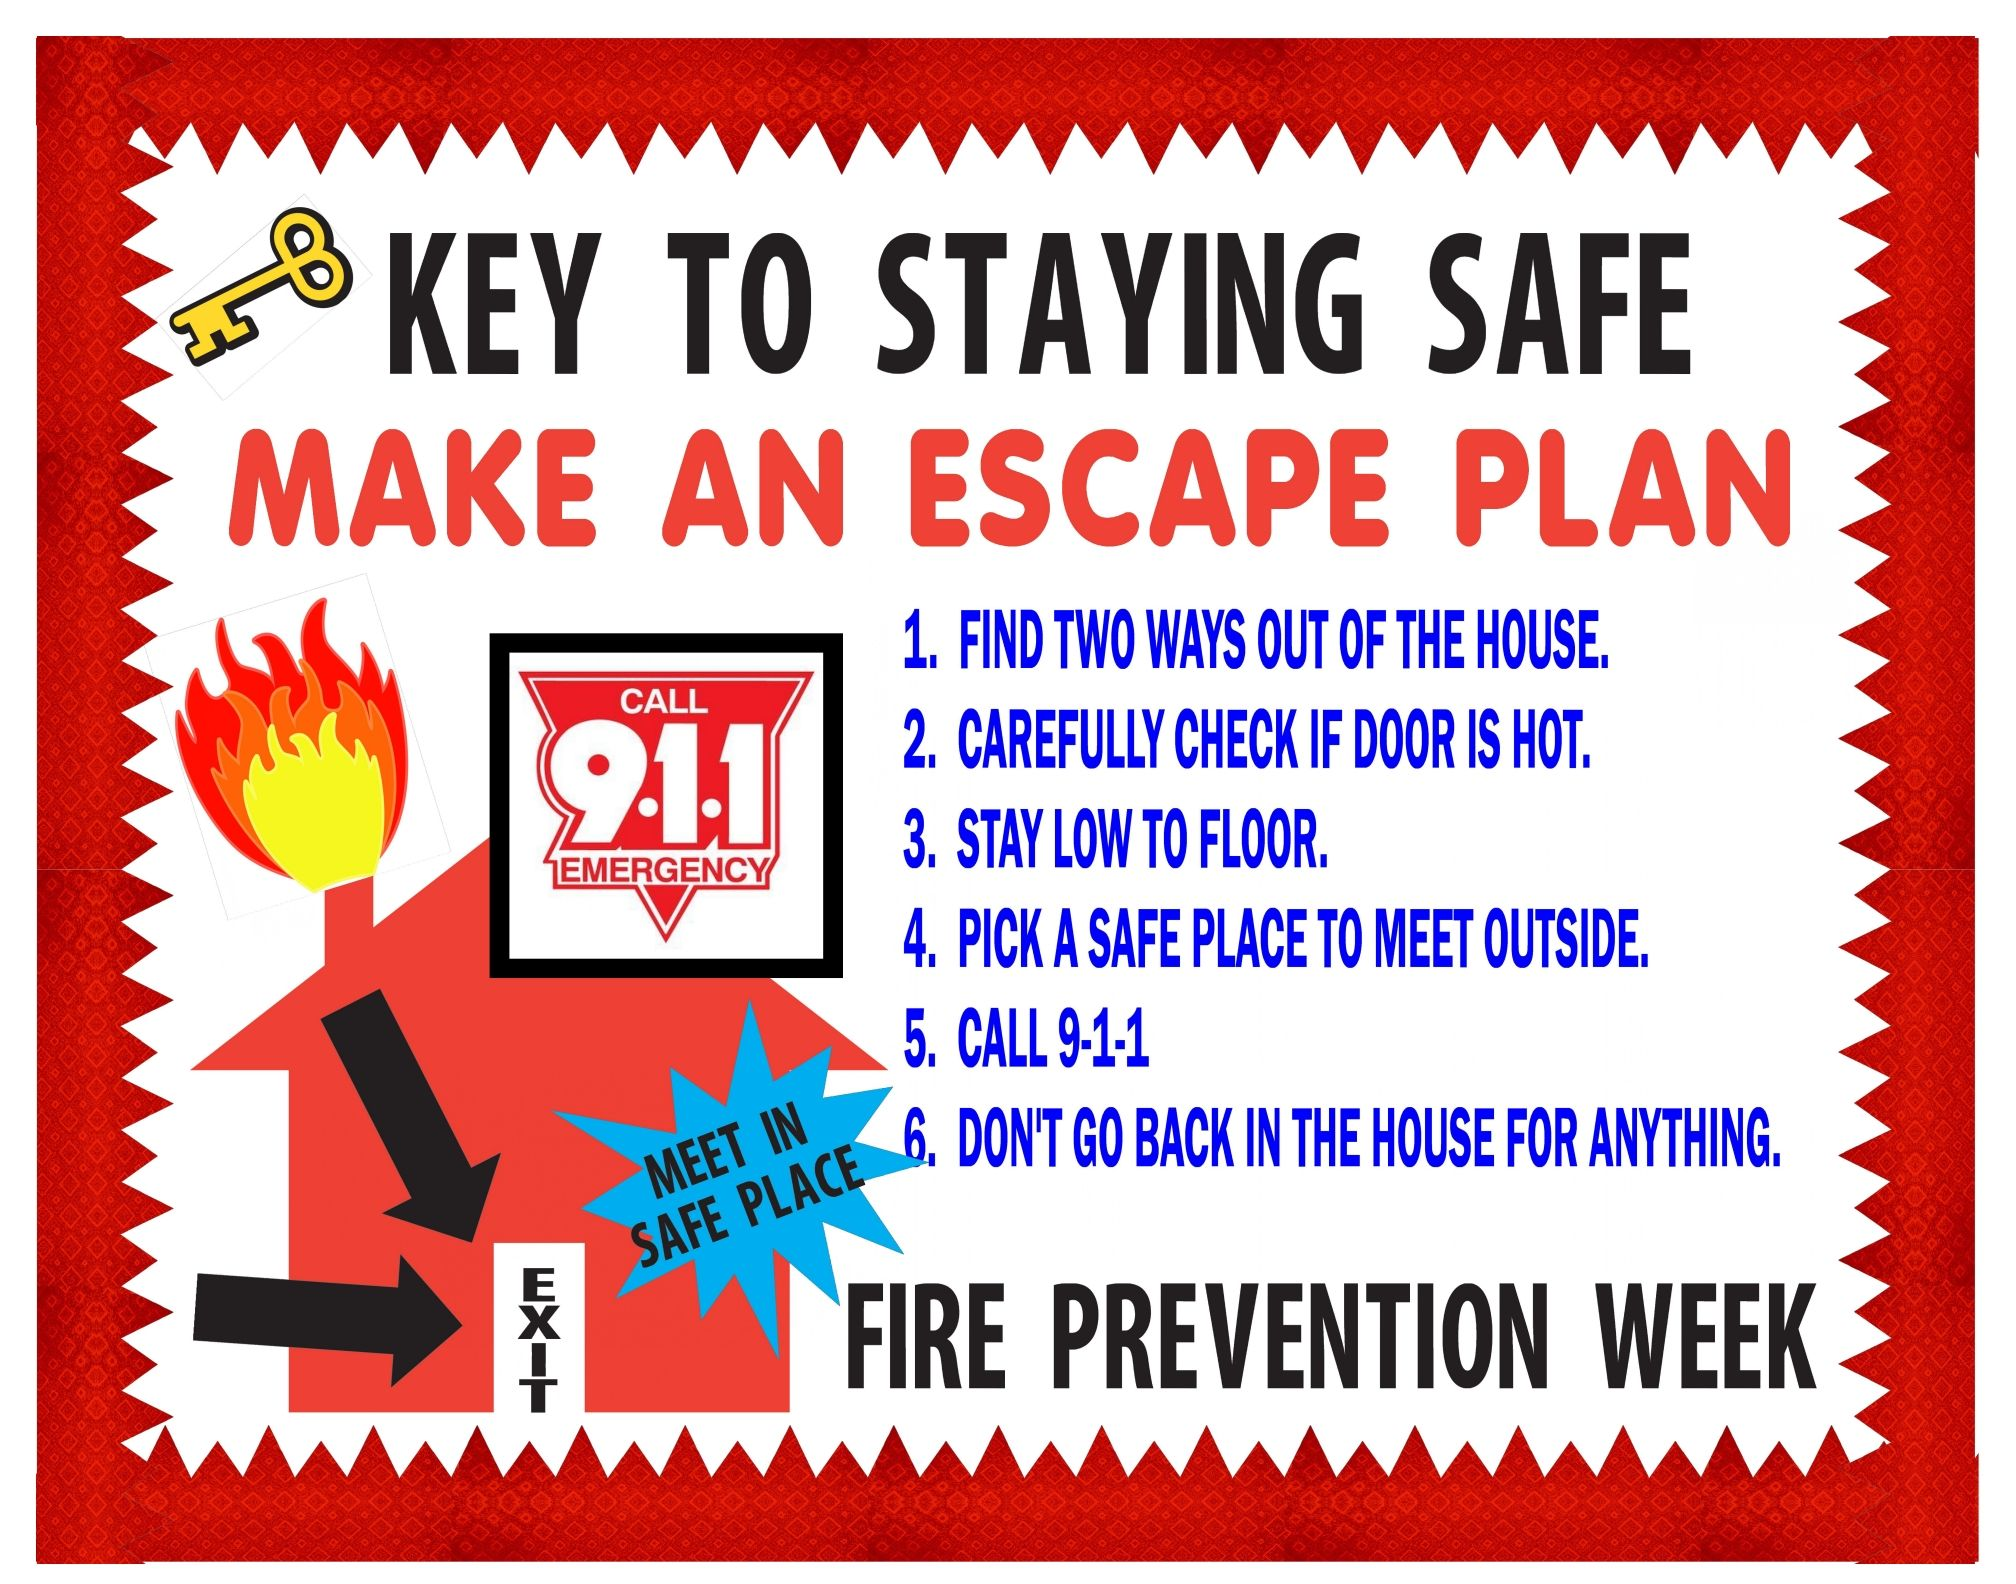 Fire Safety Week Do You Have An Escape Plan